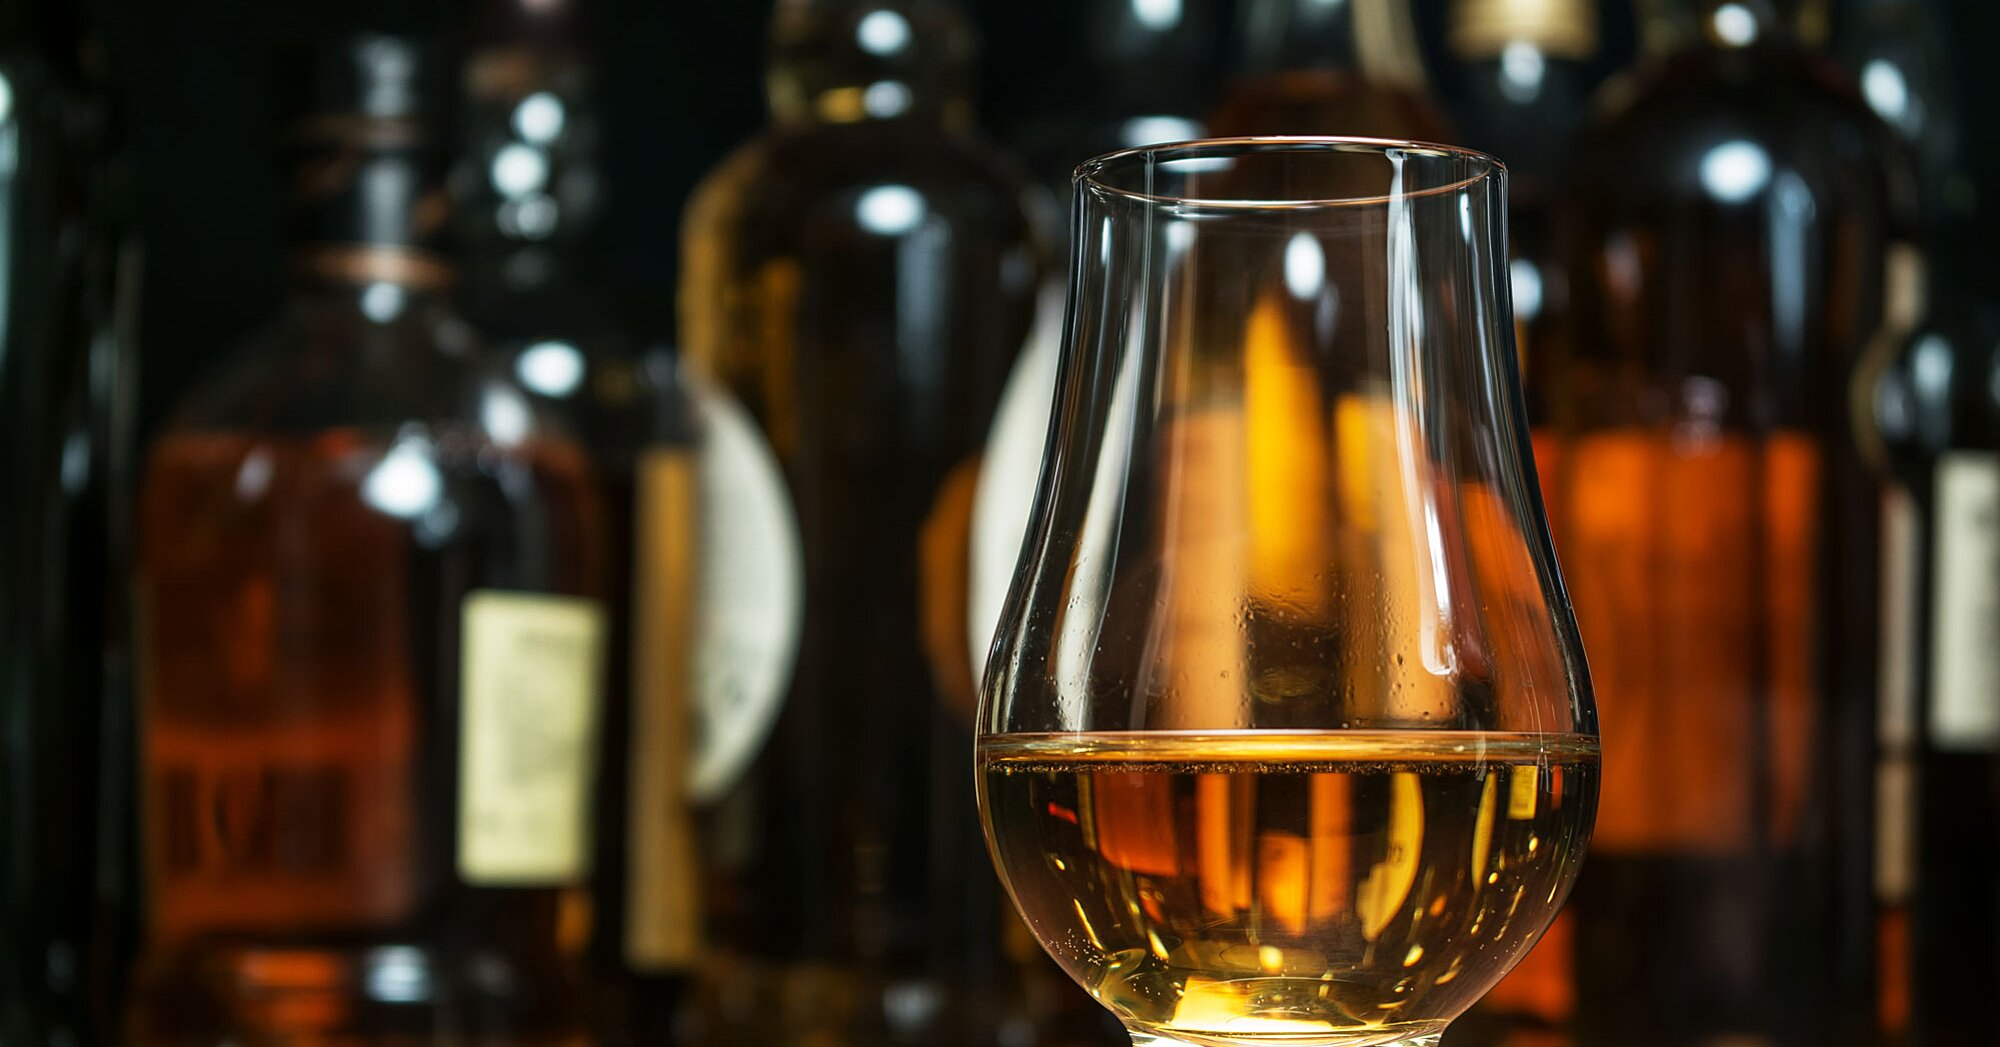 The 10 Best Whiskies to Start Your Collection